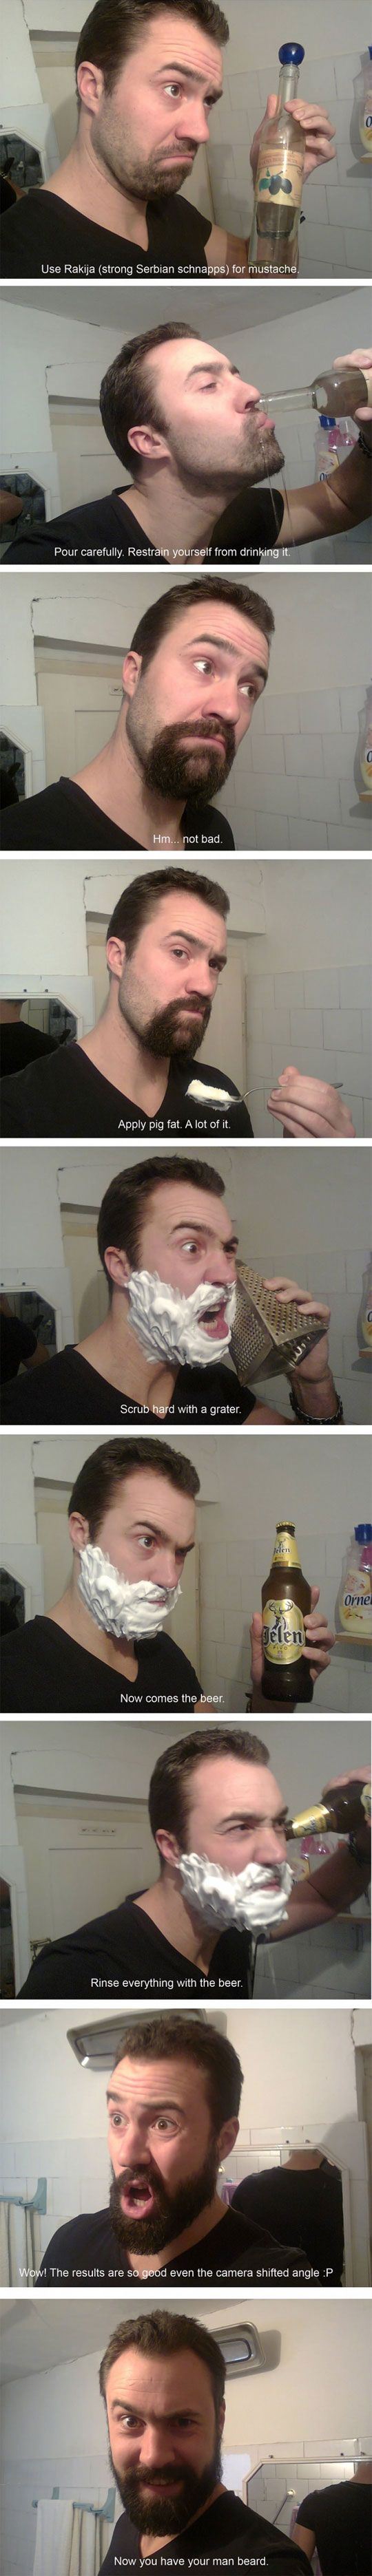 How to grow a man beard  // funny pictures - funny photos - funny images - funny pics - funny quotes - #lol #humor #funnypictures